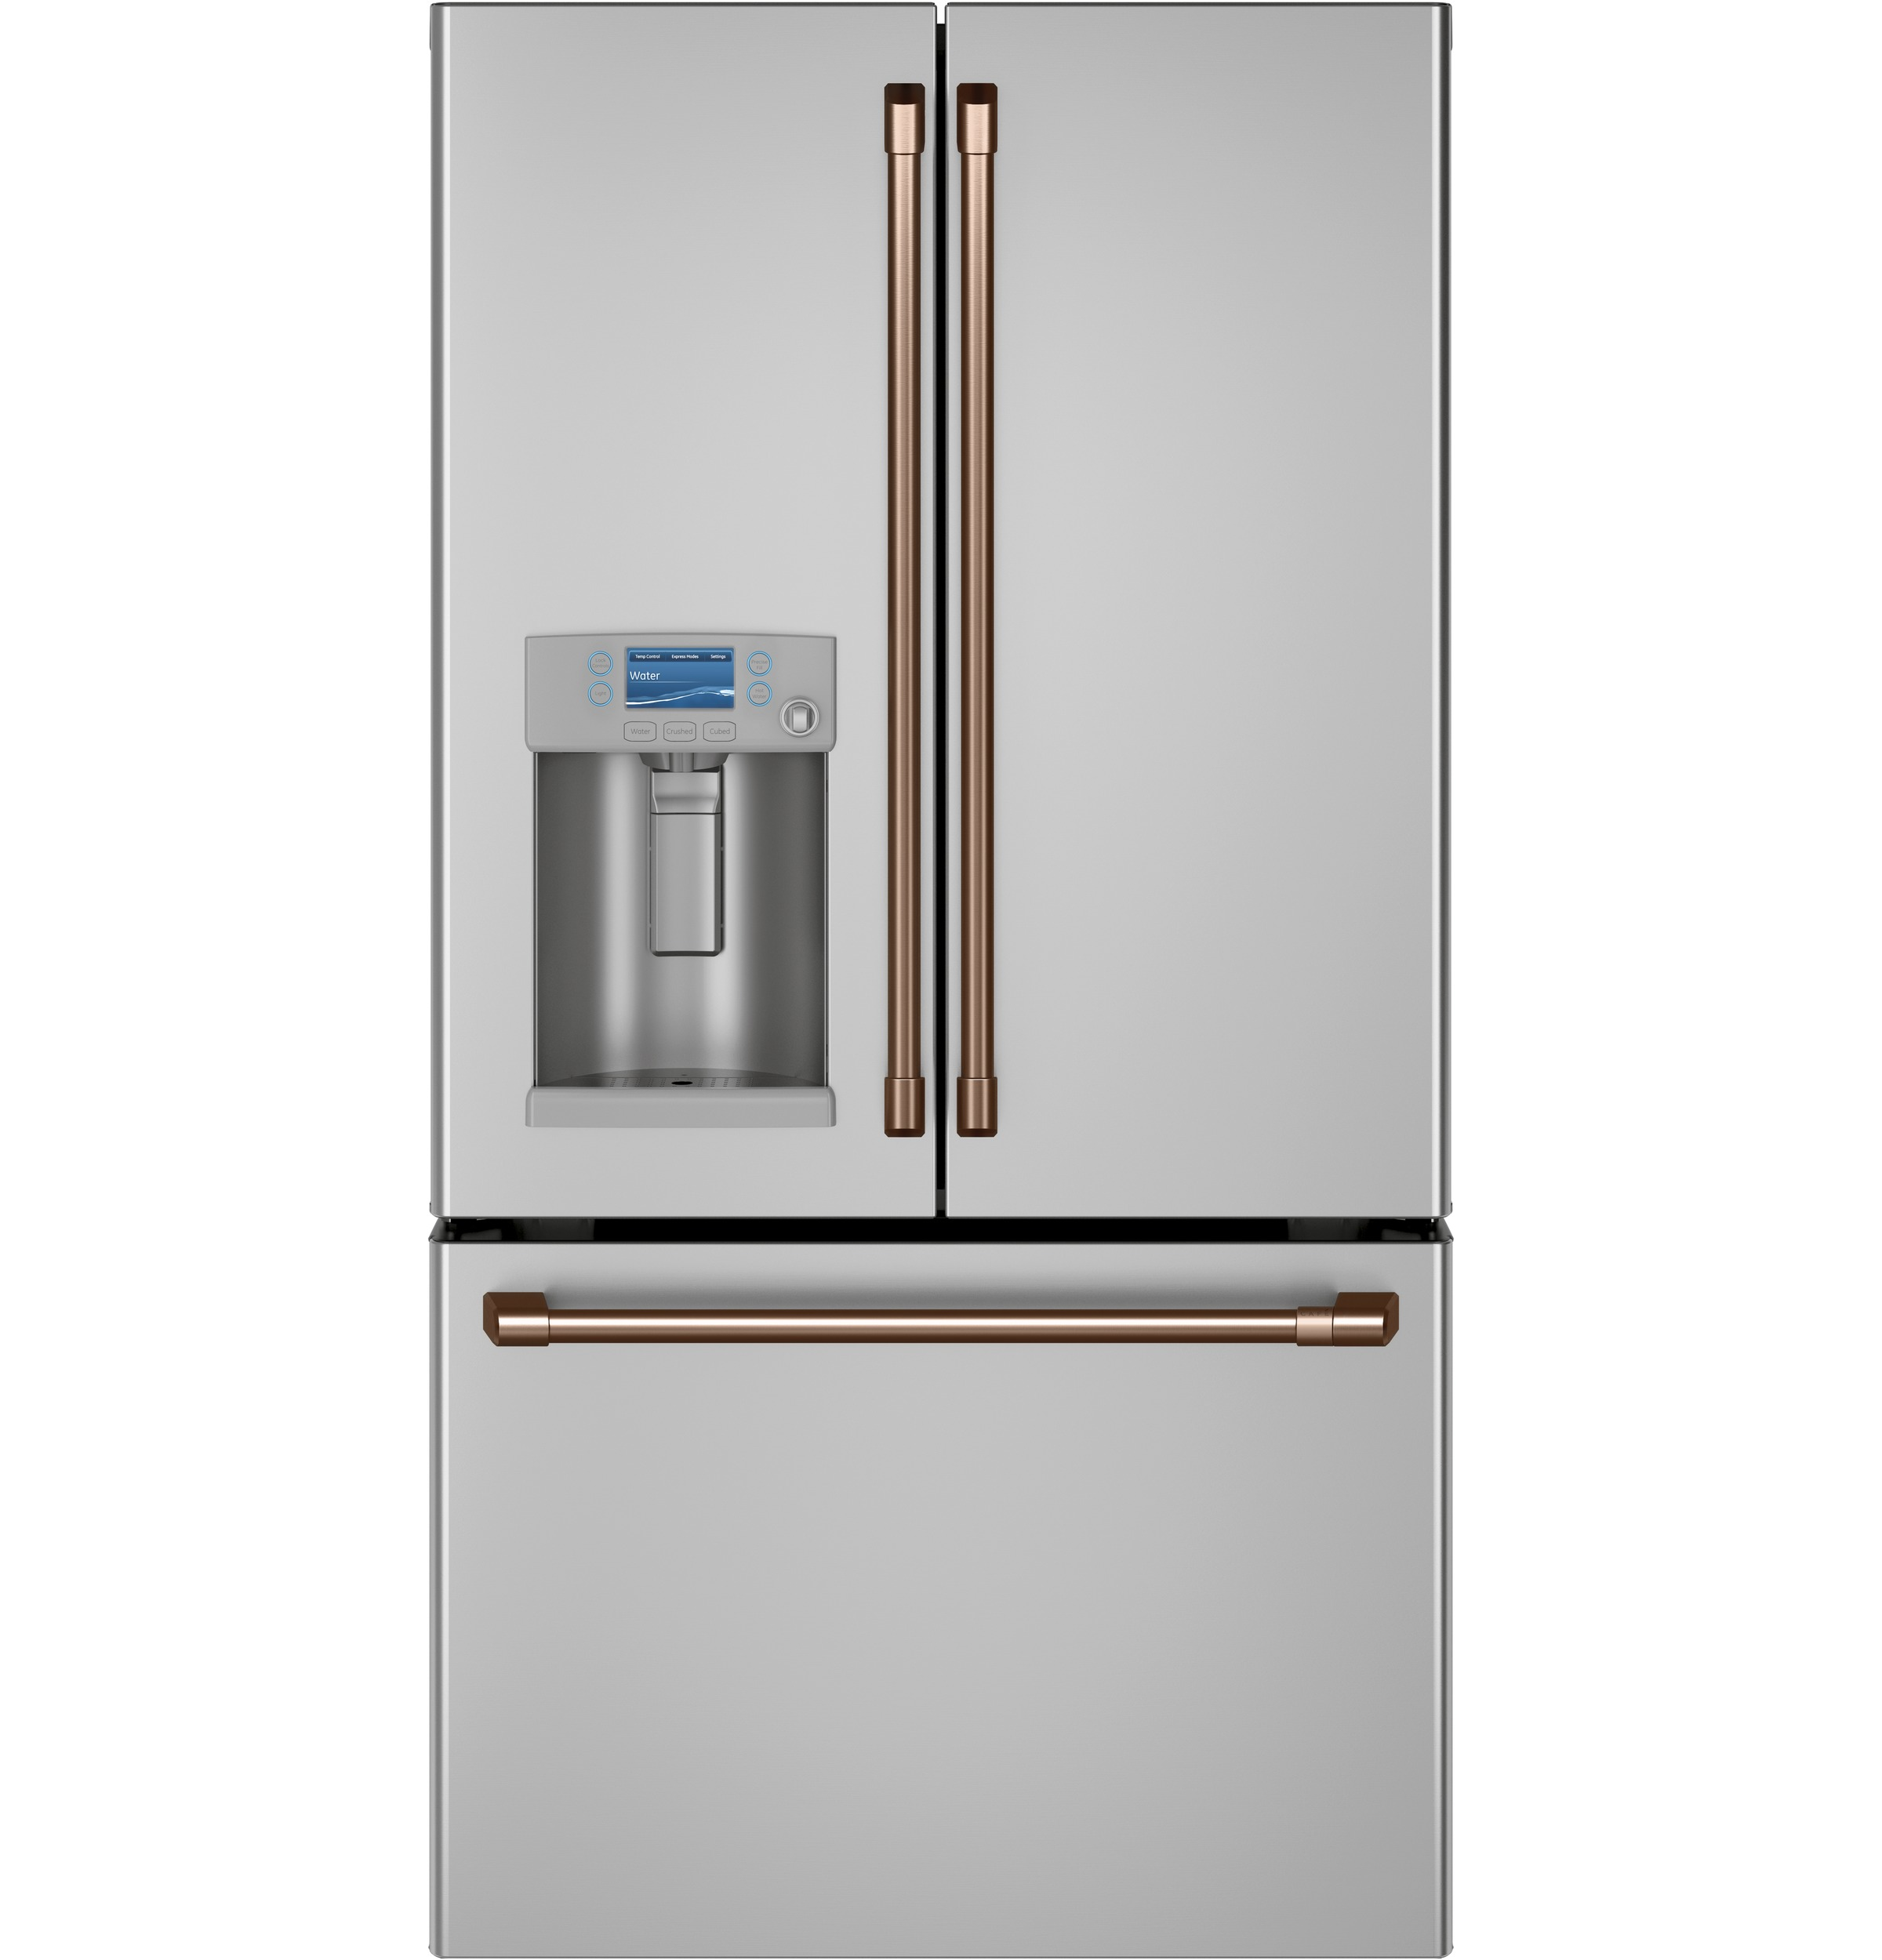 Model: CFE28TP2MS1 | Café™ ENERGY STAR® 27.8 Cu. Ft. French-Door Refrigerator with Hot Water Dispenser